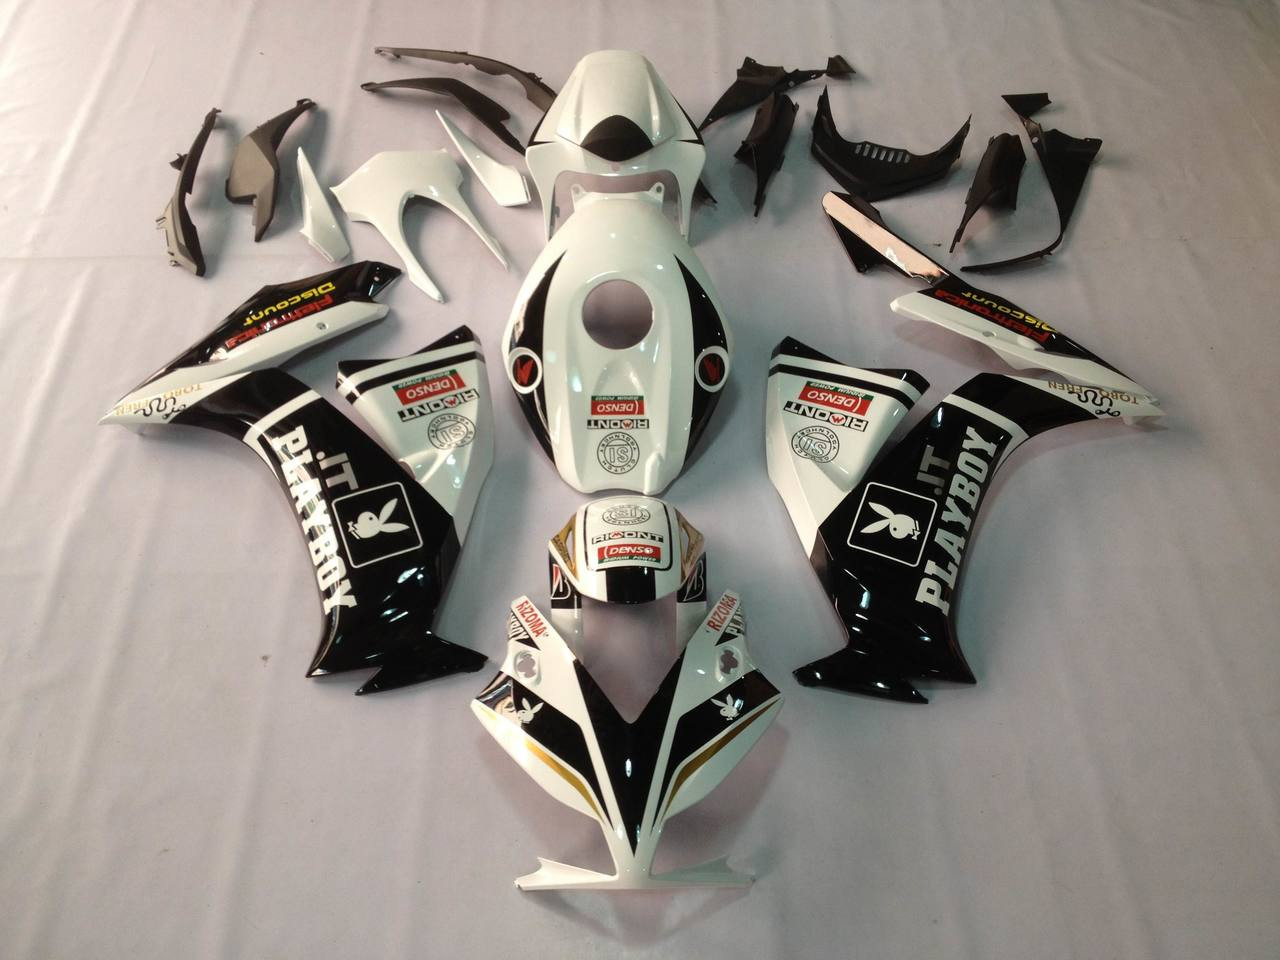 New Red Fairing Fit for HONDA 2012-2016 CBR1000RR CBR 1000RR Injection Mold ABS Plastics Aftermarket Bodywork Bodyframe Kit Set 2013 2014 2015 12 13 14 15 16